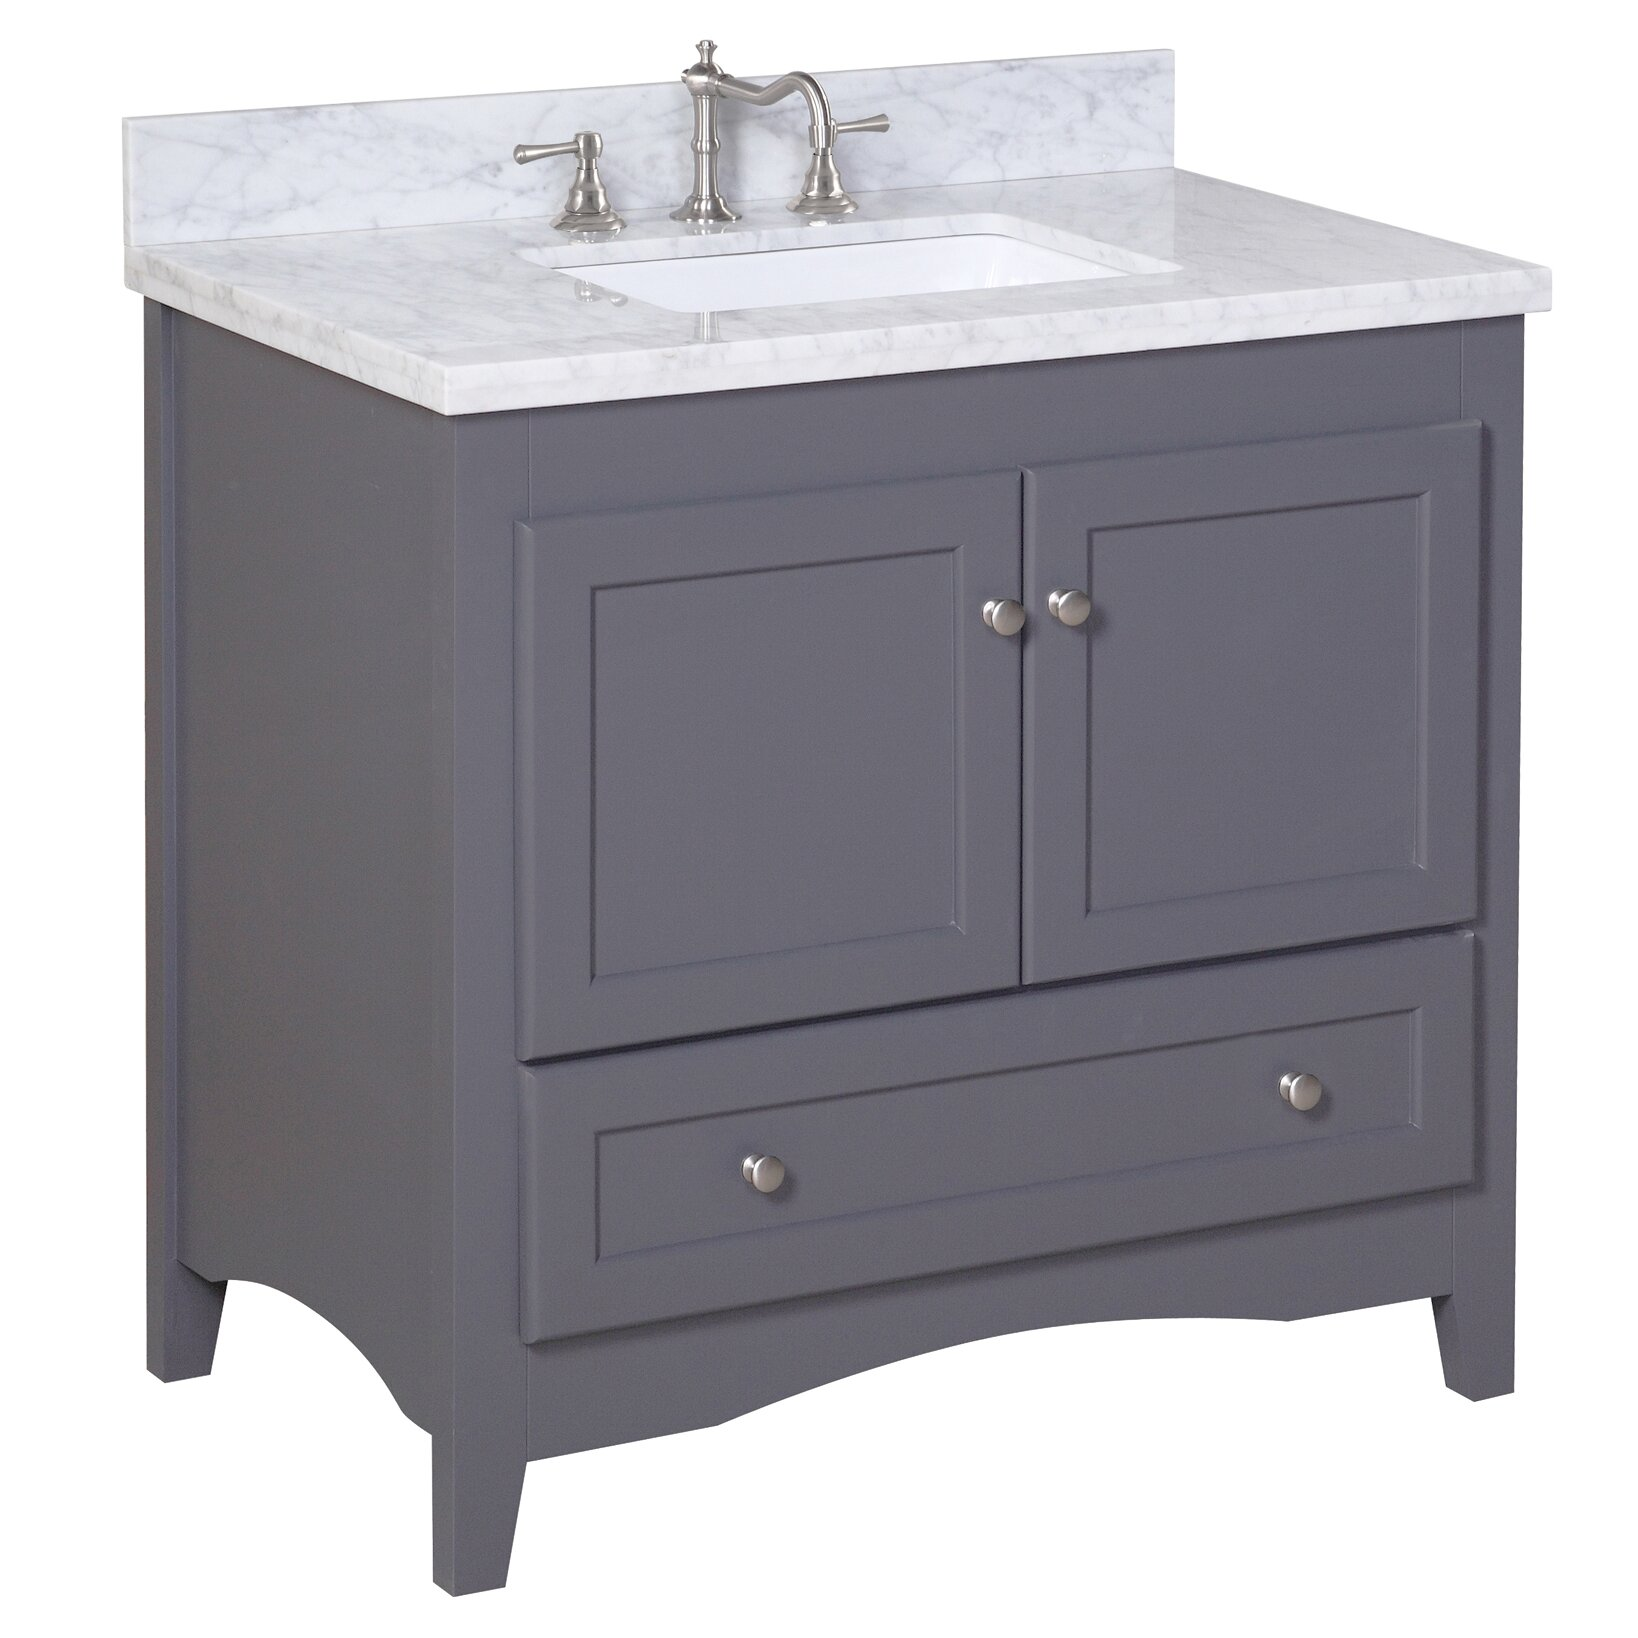 Kbc abbey 36 single bathroom vanity set reviews wayfair for Bath and vanity set